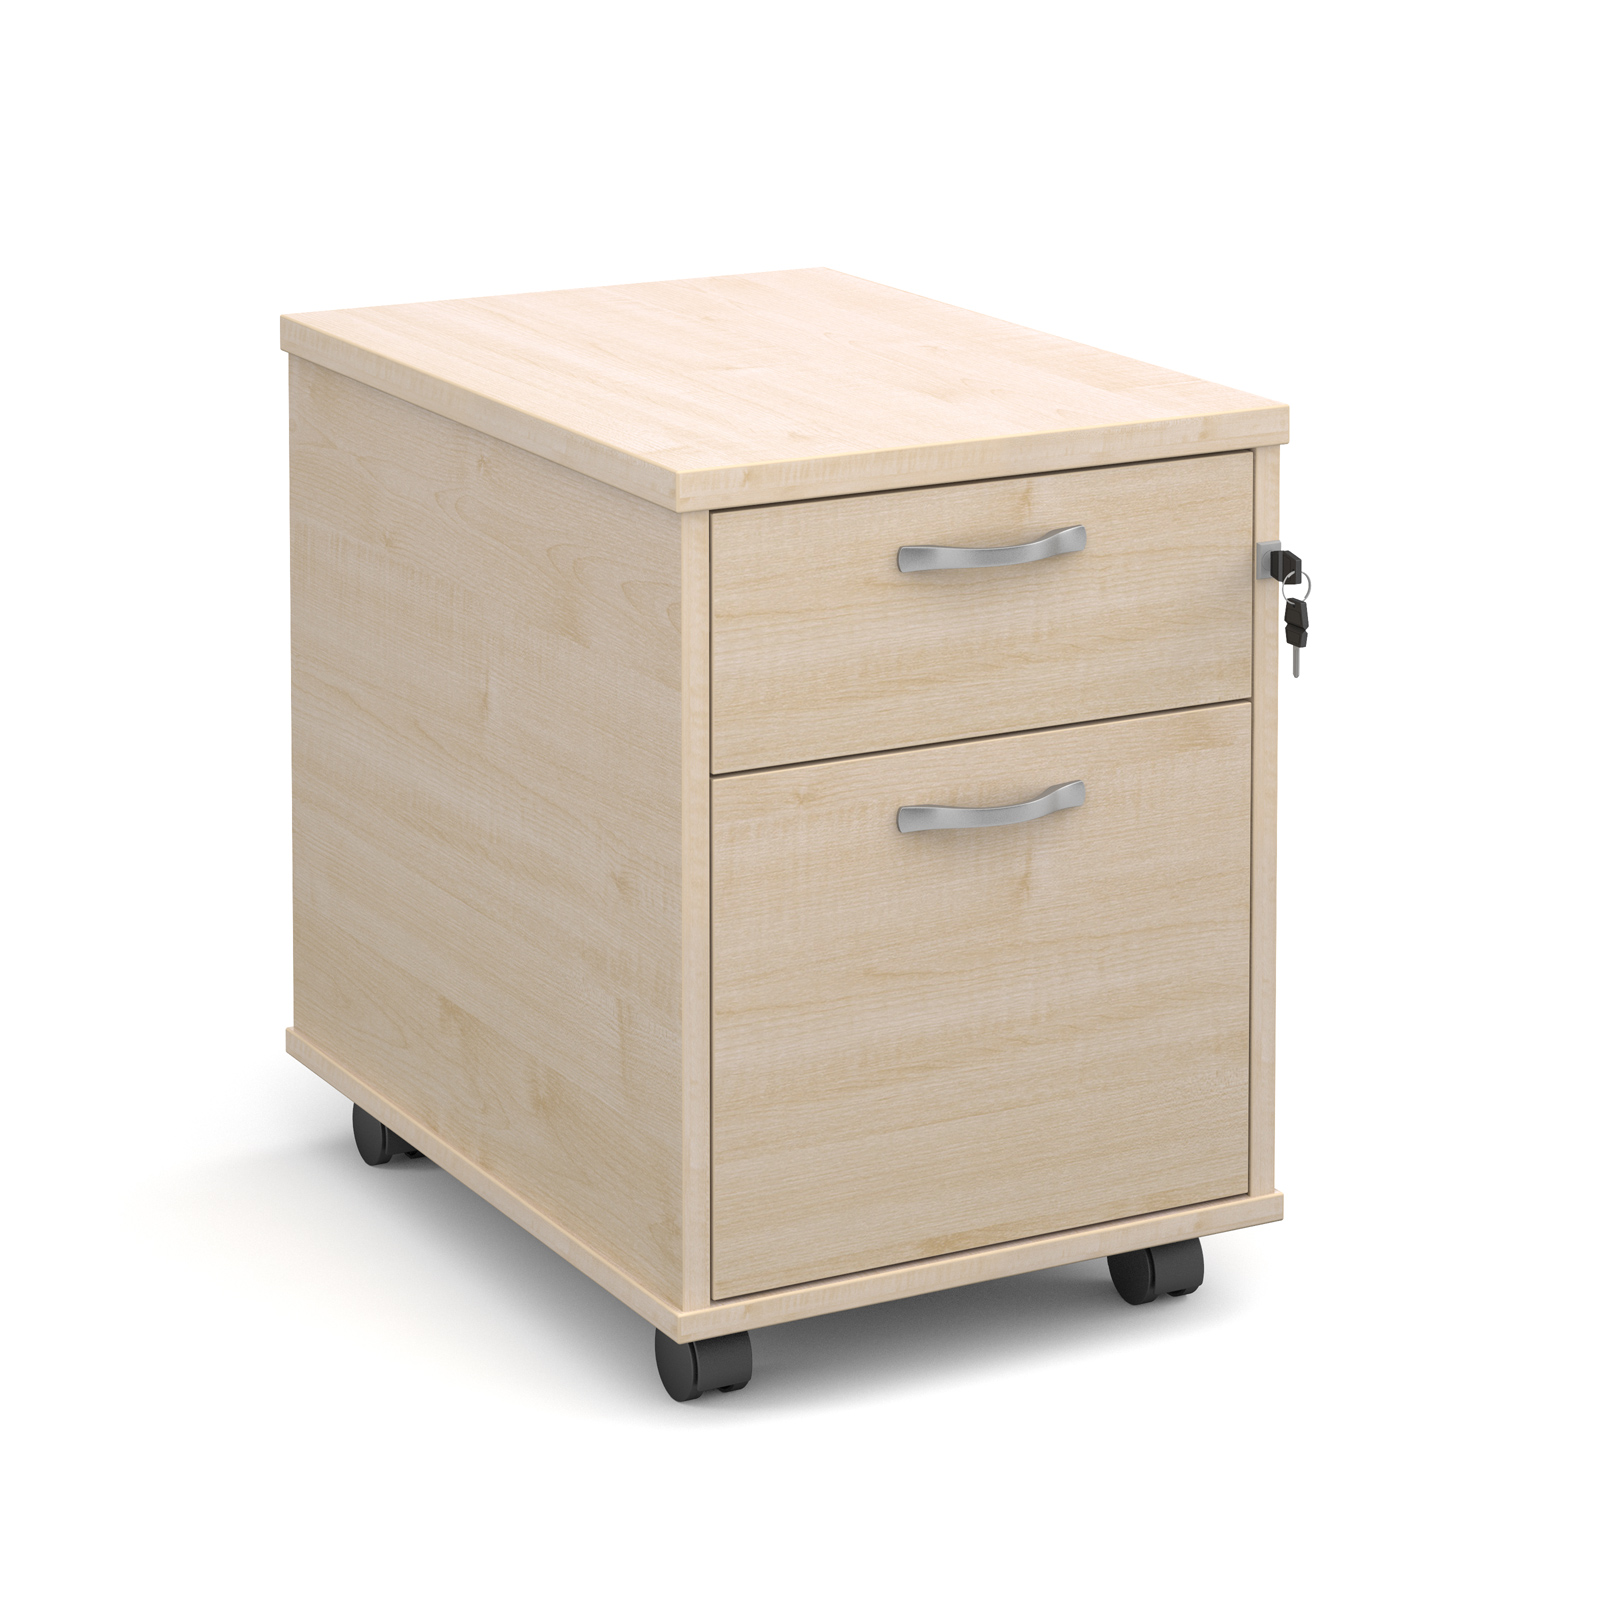 2 Drawer Mobile 2 drawer pedestal with silver handles 600mm deep - maple